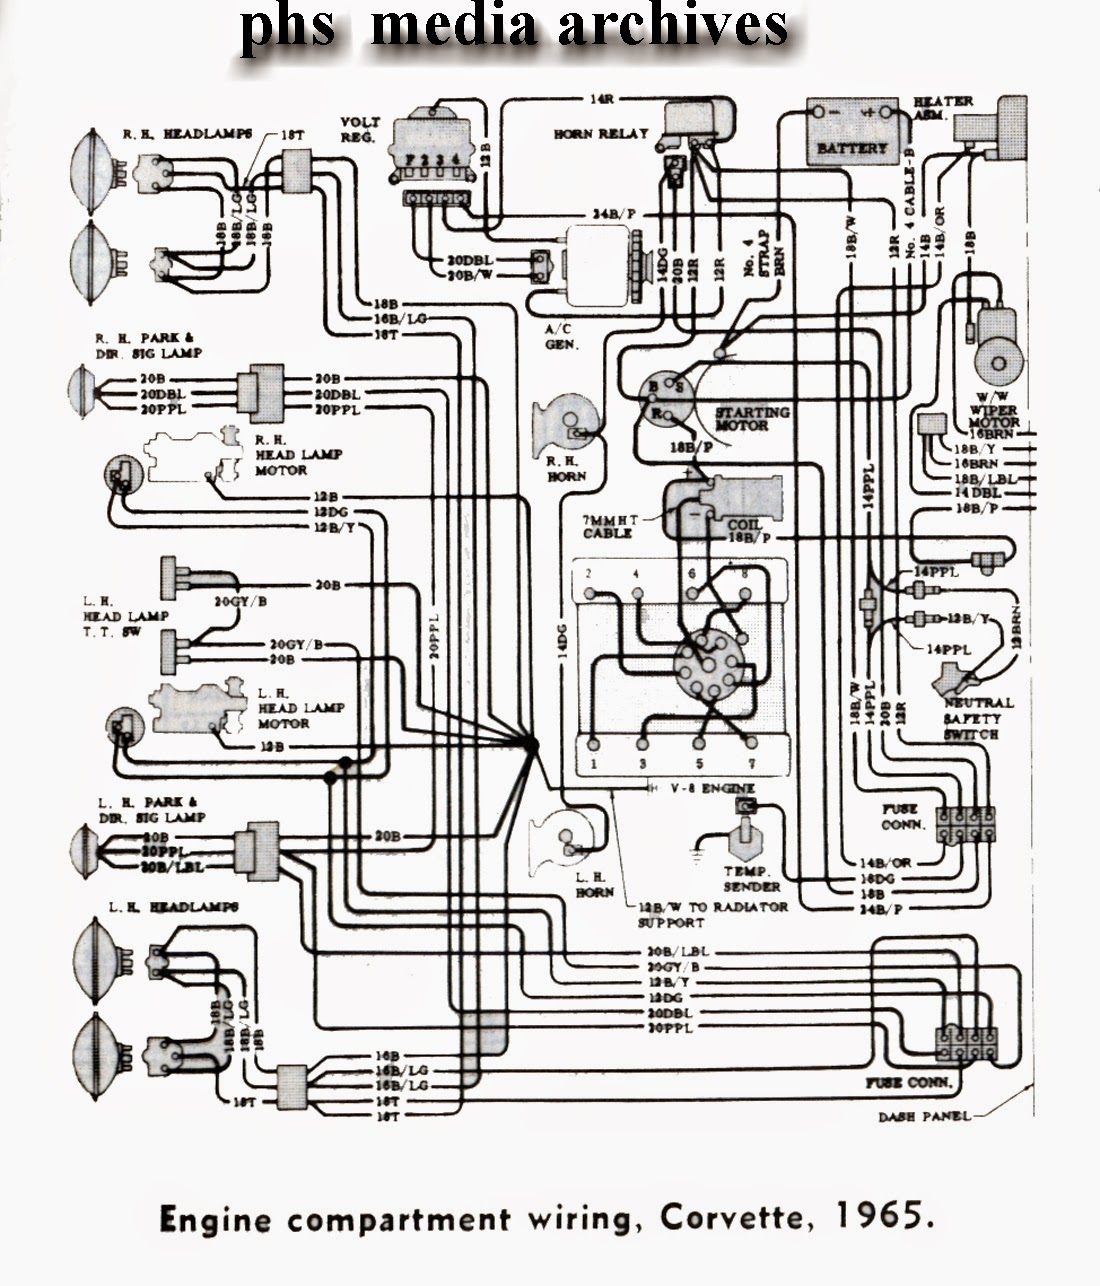 1980 Oldsmobile Ignition Wiring Diagram Schematics Diagrams 83 Camaro Tech Series 1965 Chevrolet Corvette Engine Fuse Rh Phscollectorcarworld Blogspot Com 1998 88 Transmission